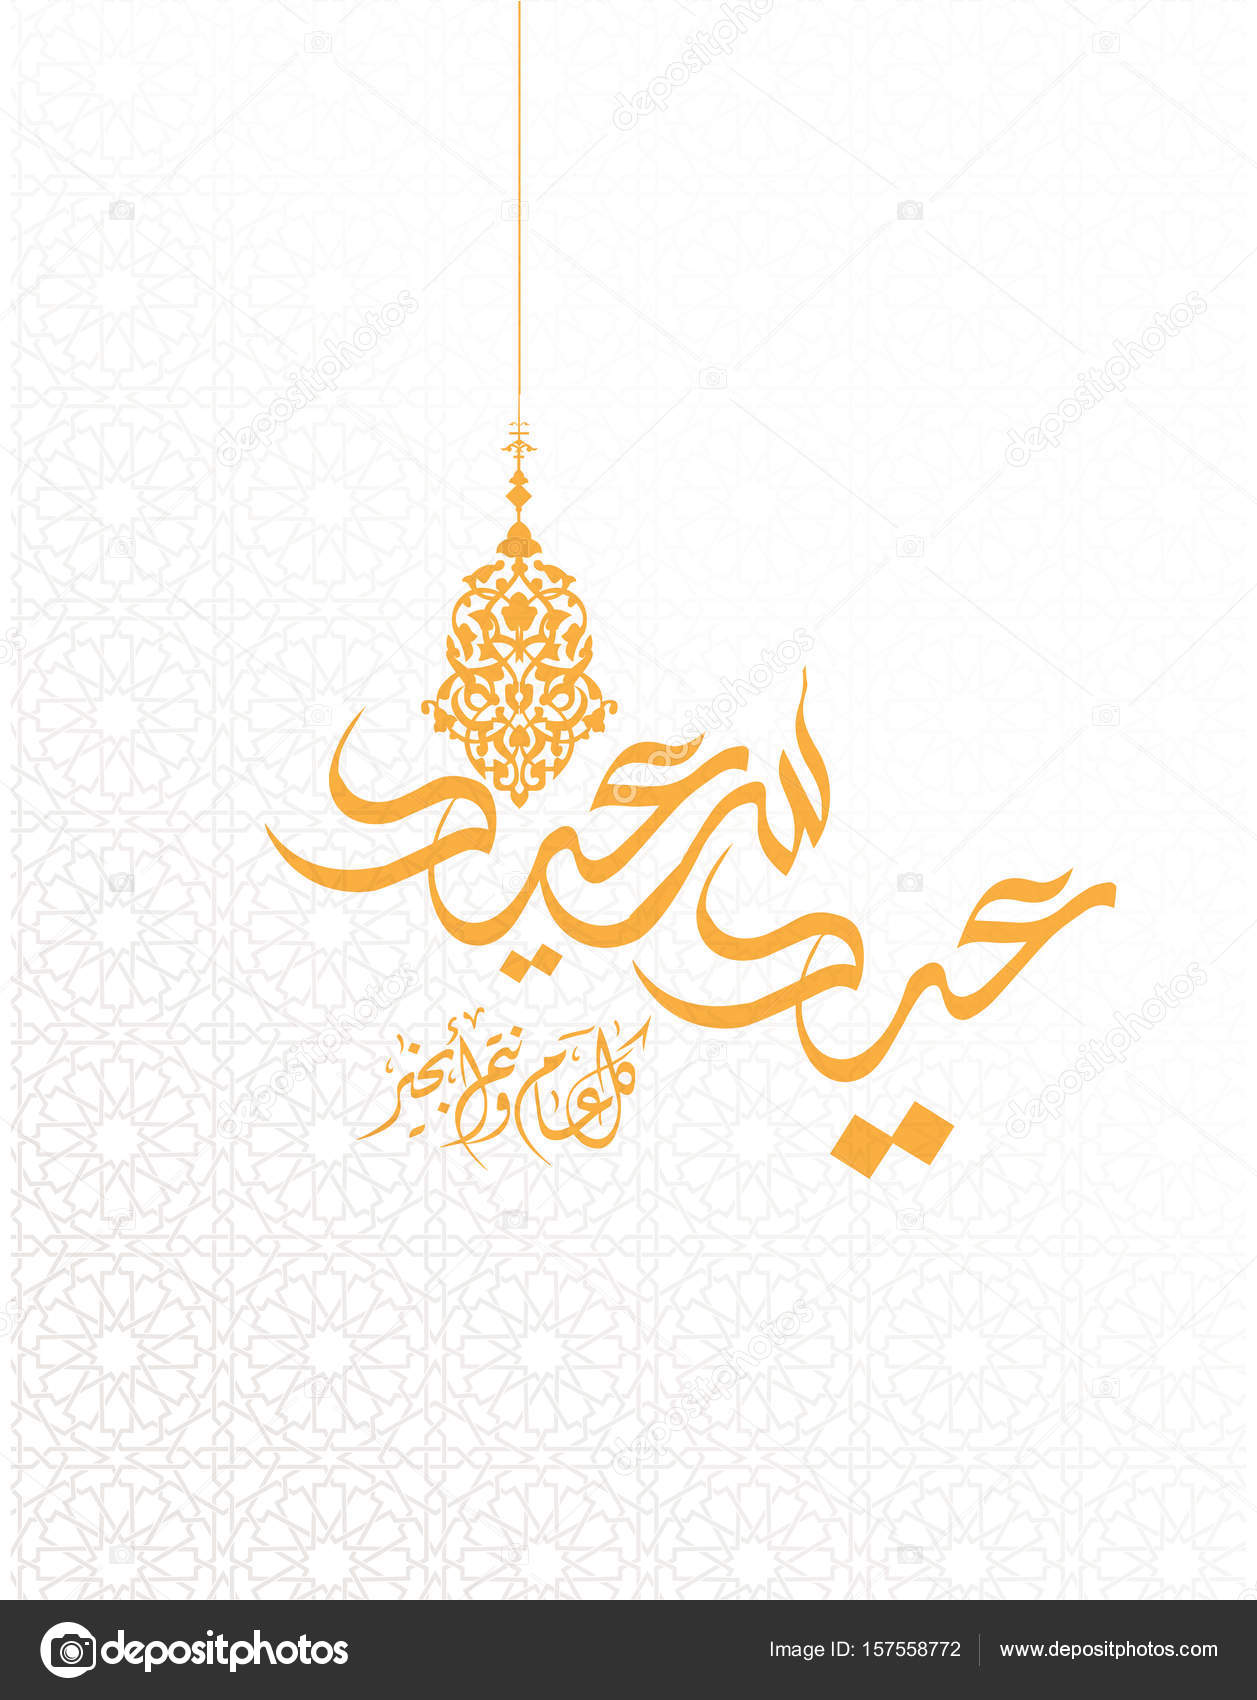 Greetings card on the occasion of eid al fitr to the muslims greetings card on the occasion of eid al fitr to the muslims beautiful islamic background arabic calligraphy translation blessed eid eid mubarak kristyandbryce Image collections